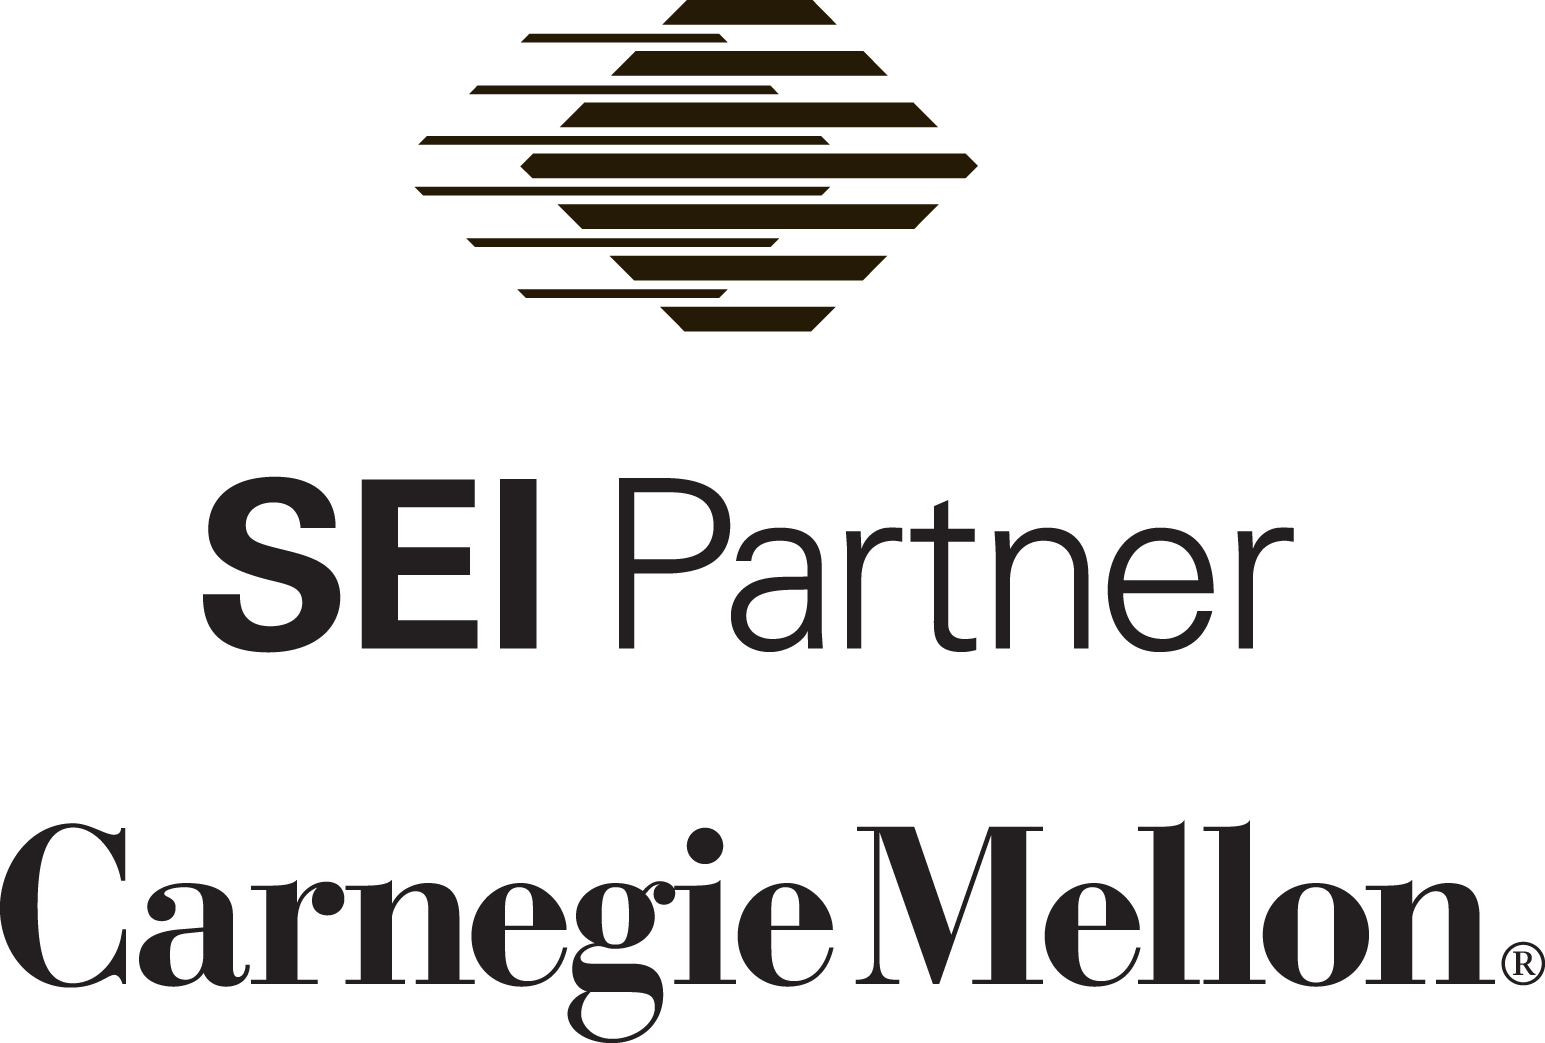 SEI_Partner_CMU_Centered_Black.png